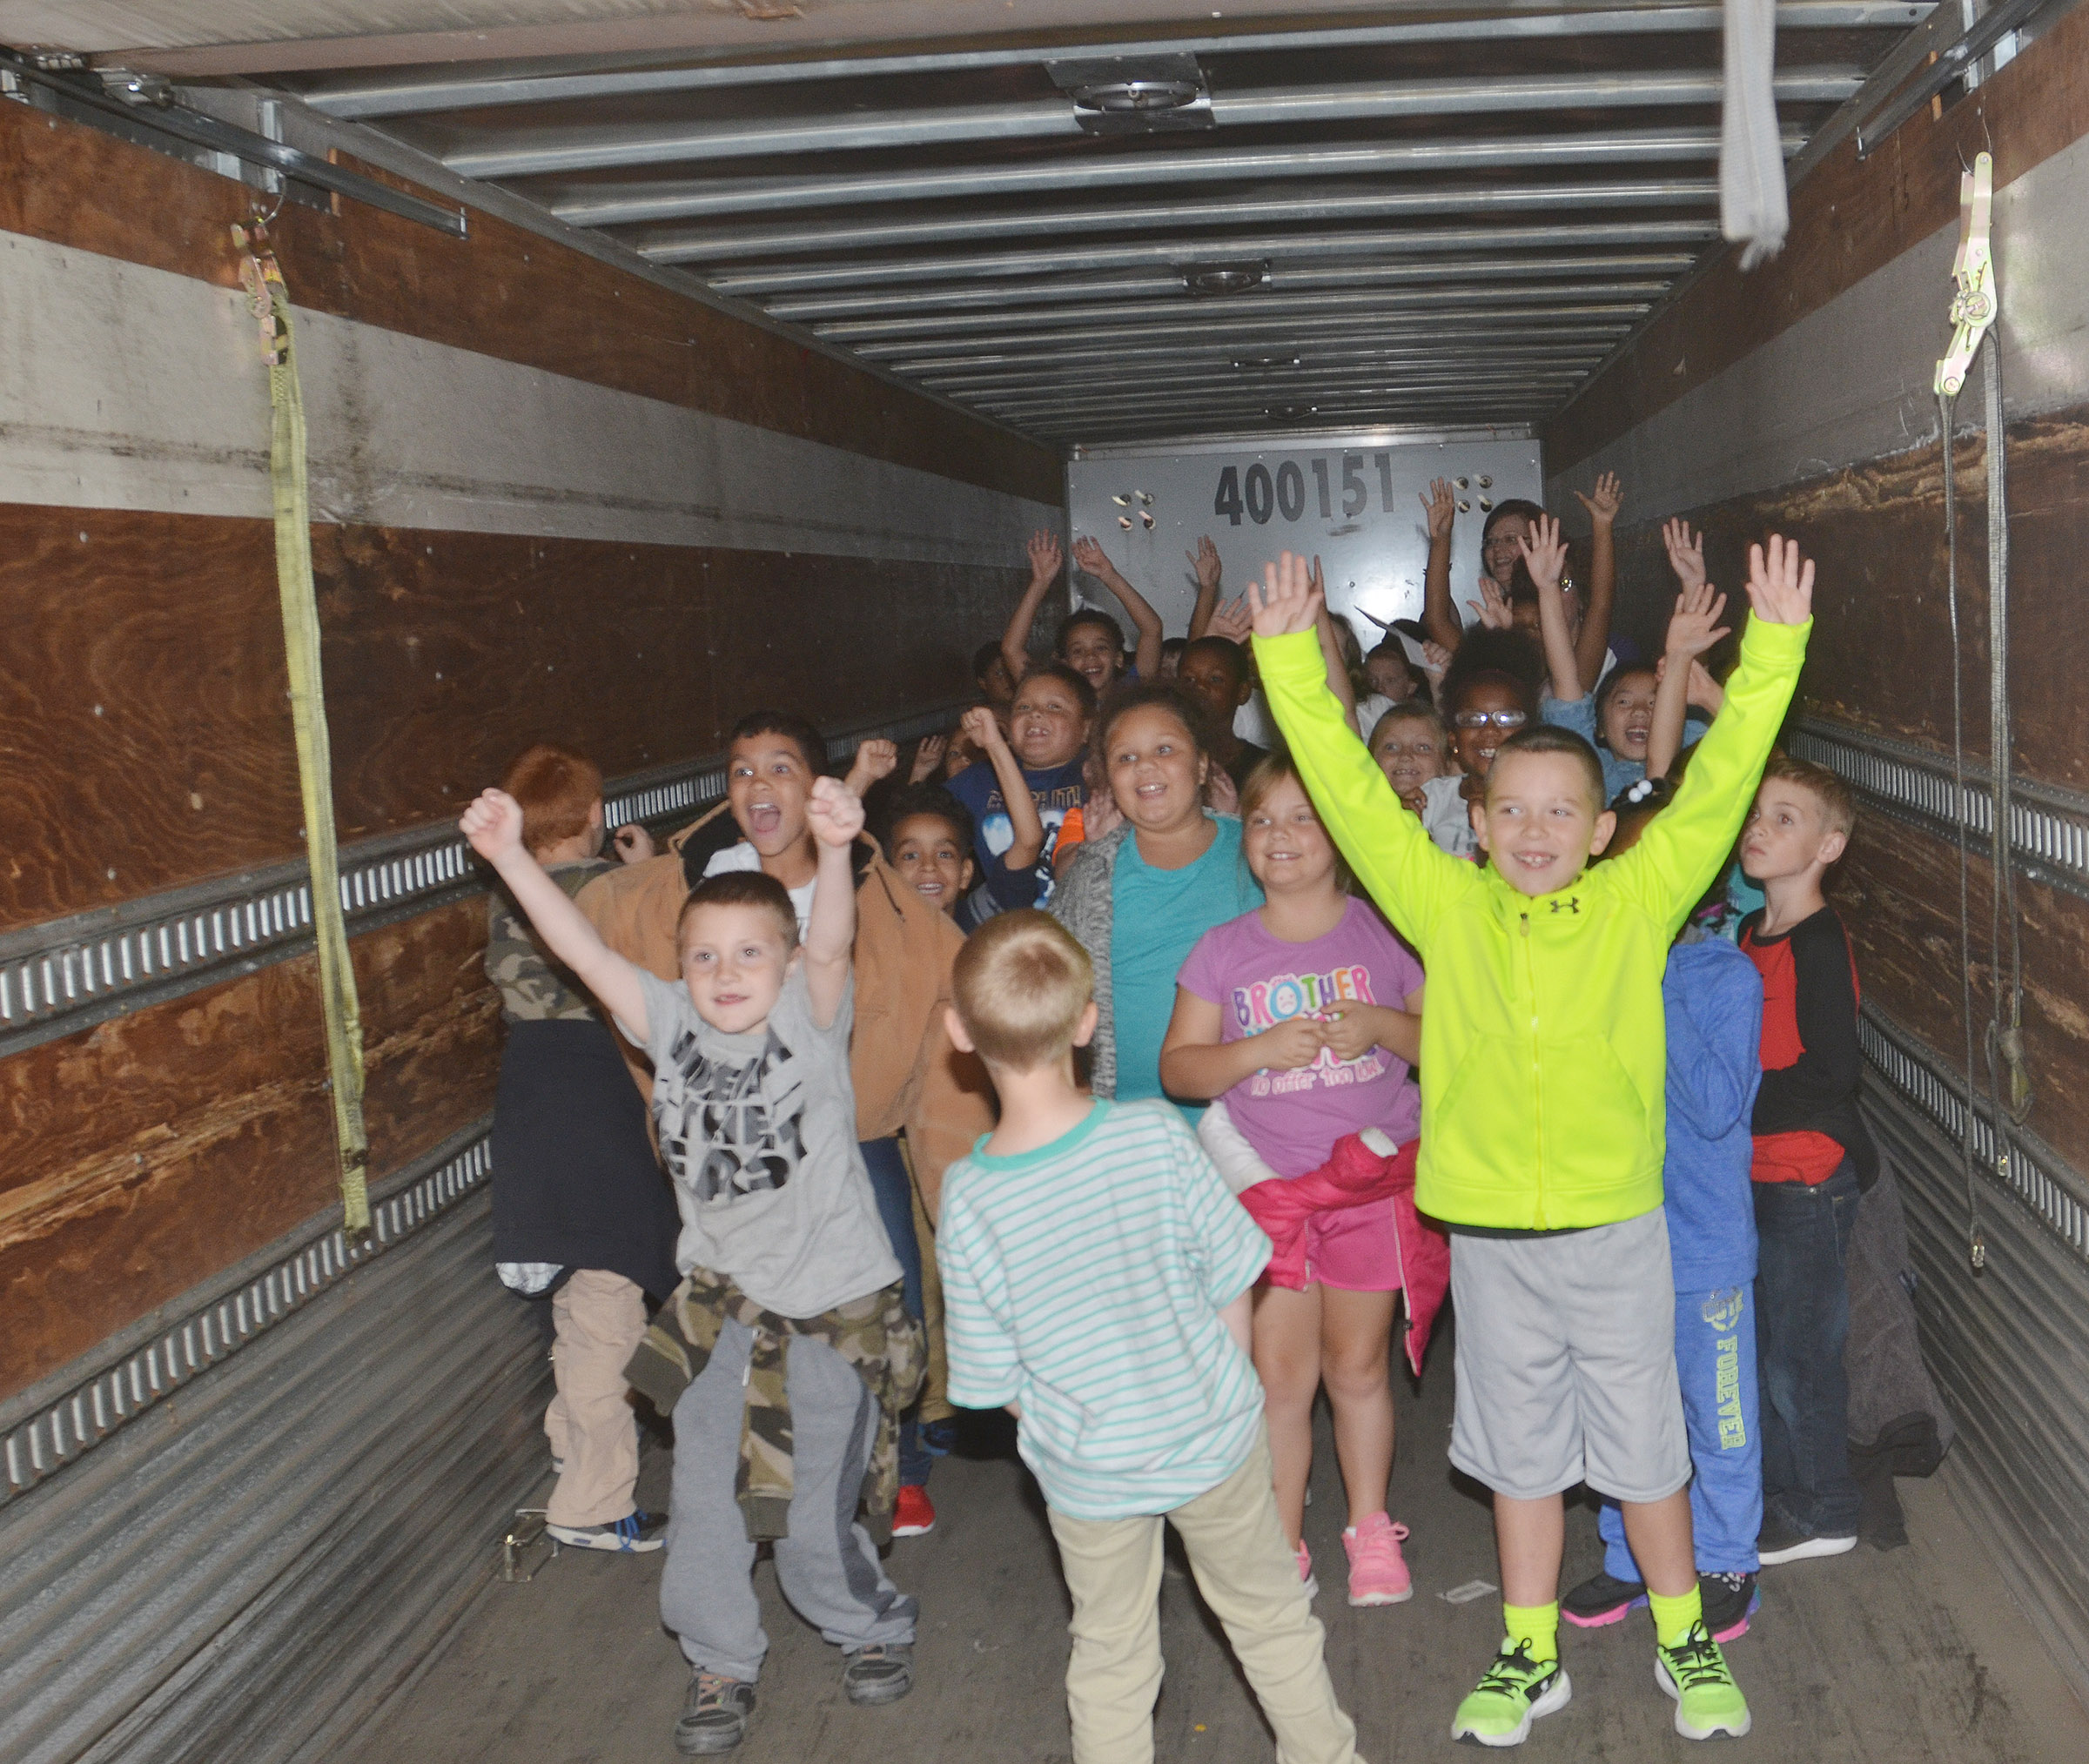 CES second-graders climb inside a mail truck.